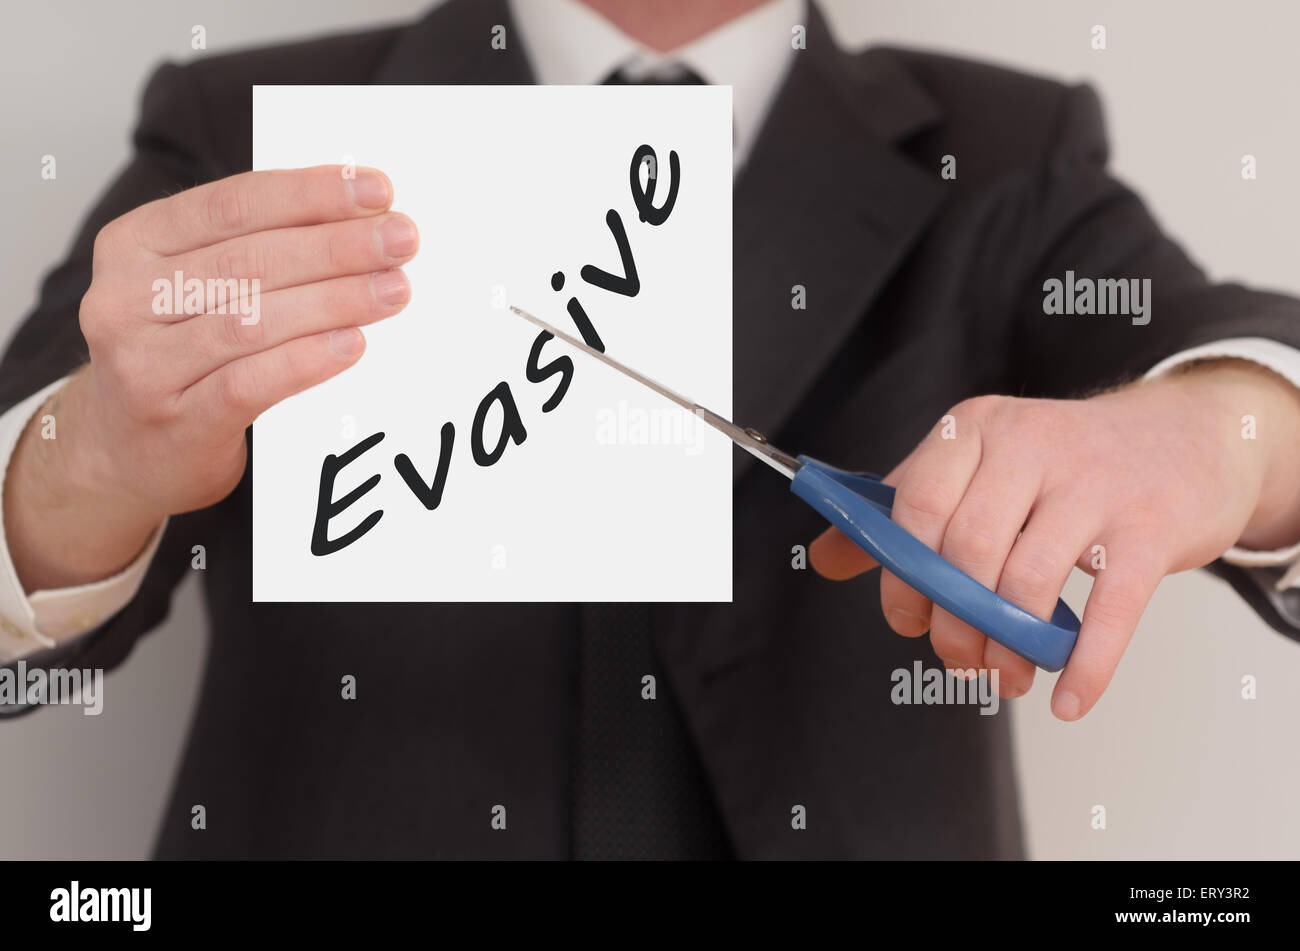 Evasive, man in suit cutting text on paper with scissors - Stock Image